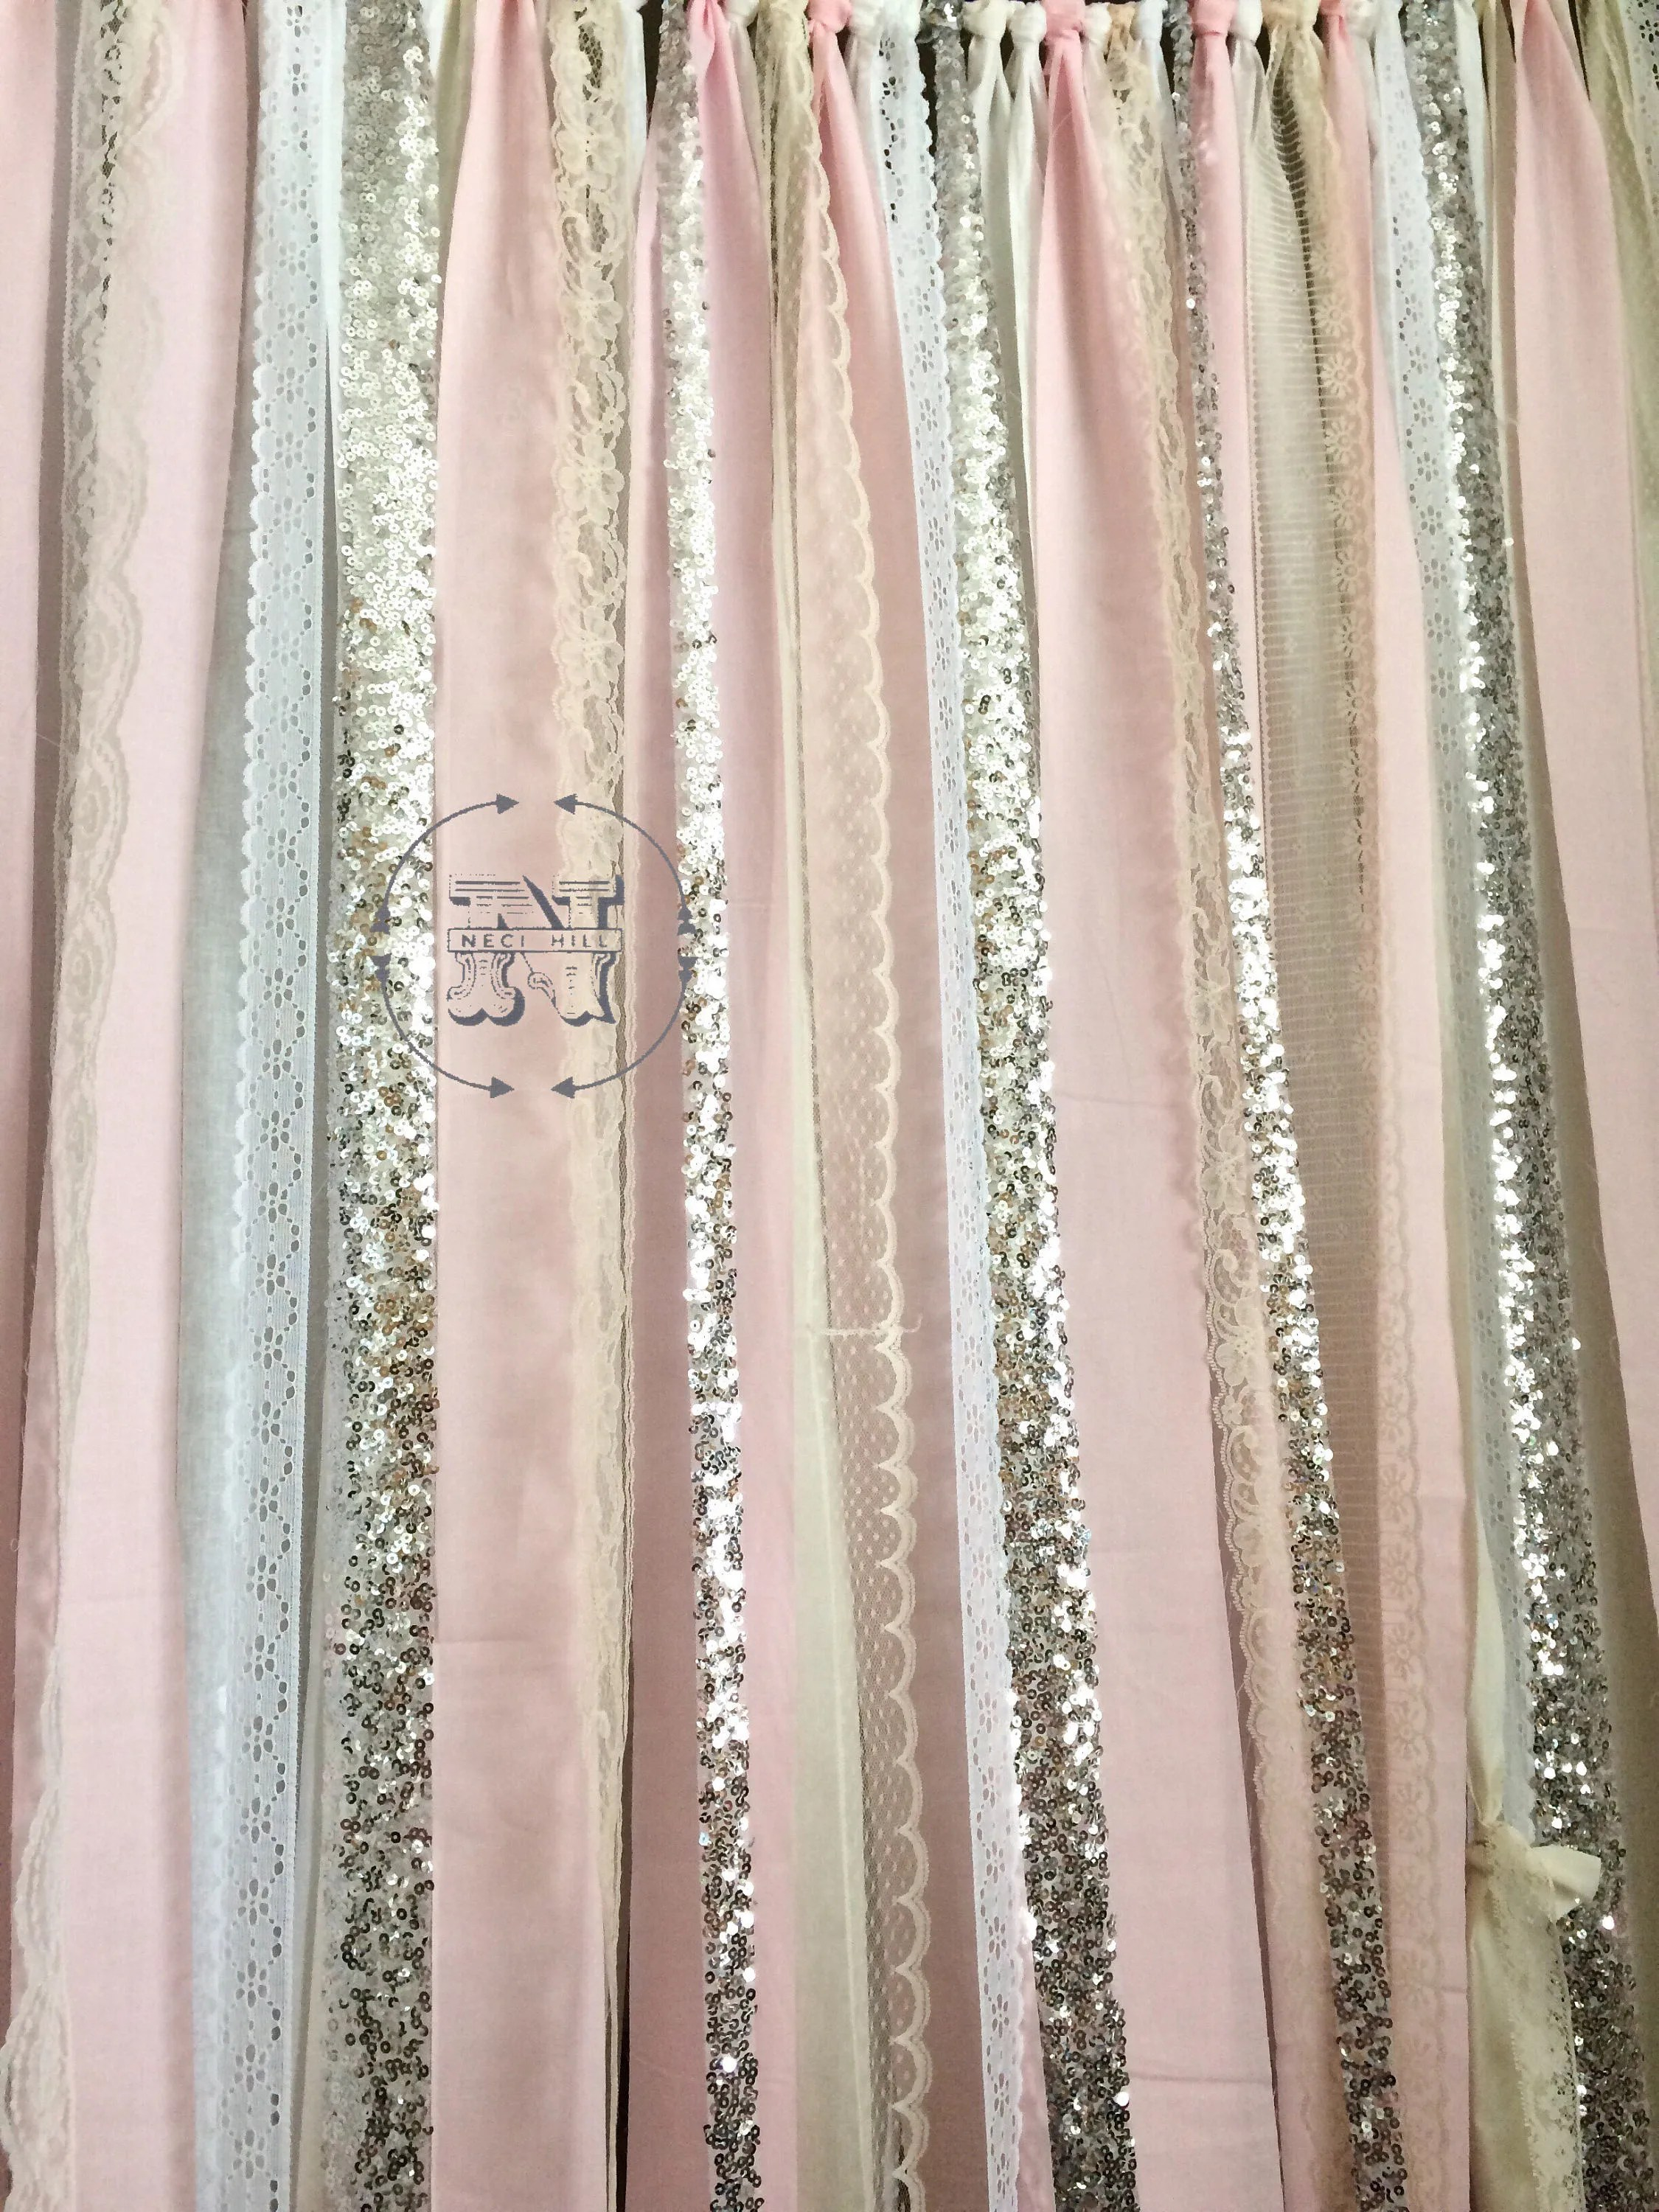 Pink Sequin Curtains Blush Backdrop Silver Sequin Curtains Fabric Rag Garland Nursery Ribbon Pink Gray White Ivory Photo Prop Curtain Wedding Shower Cakesmash